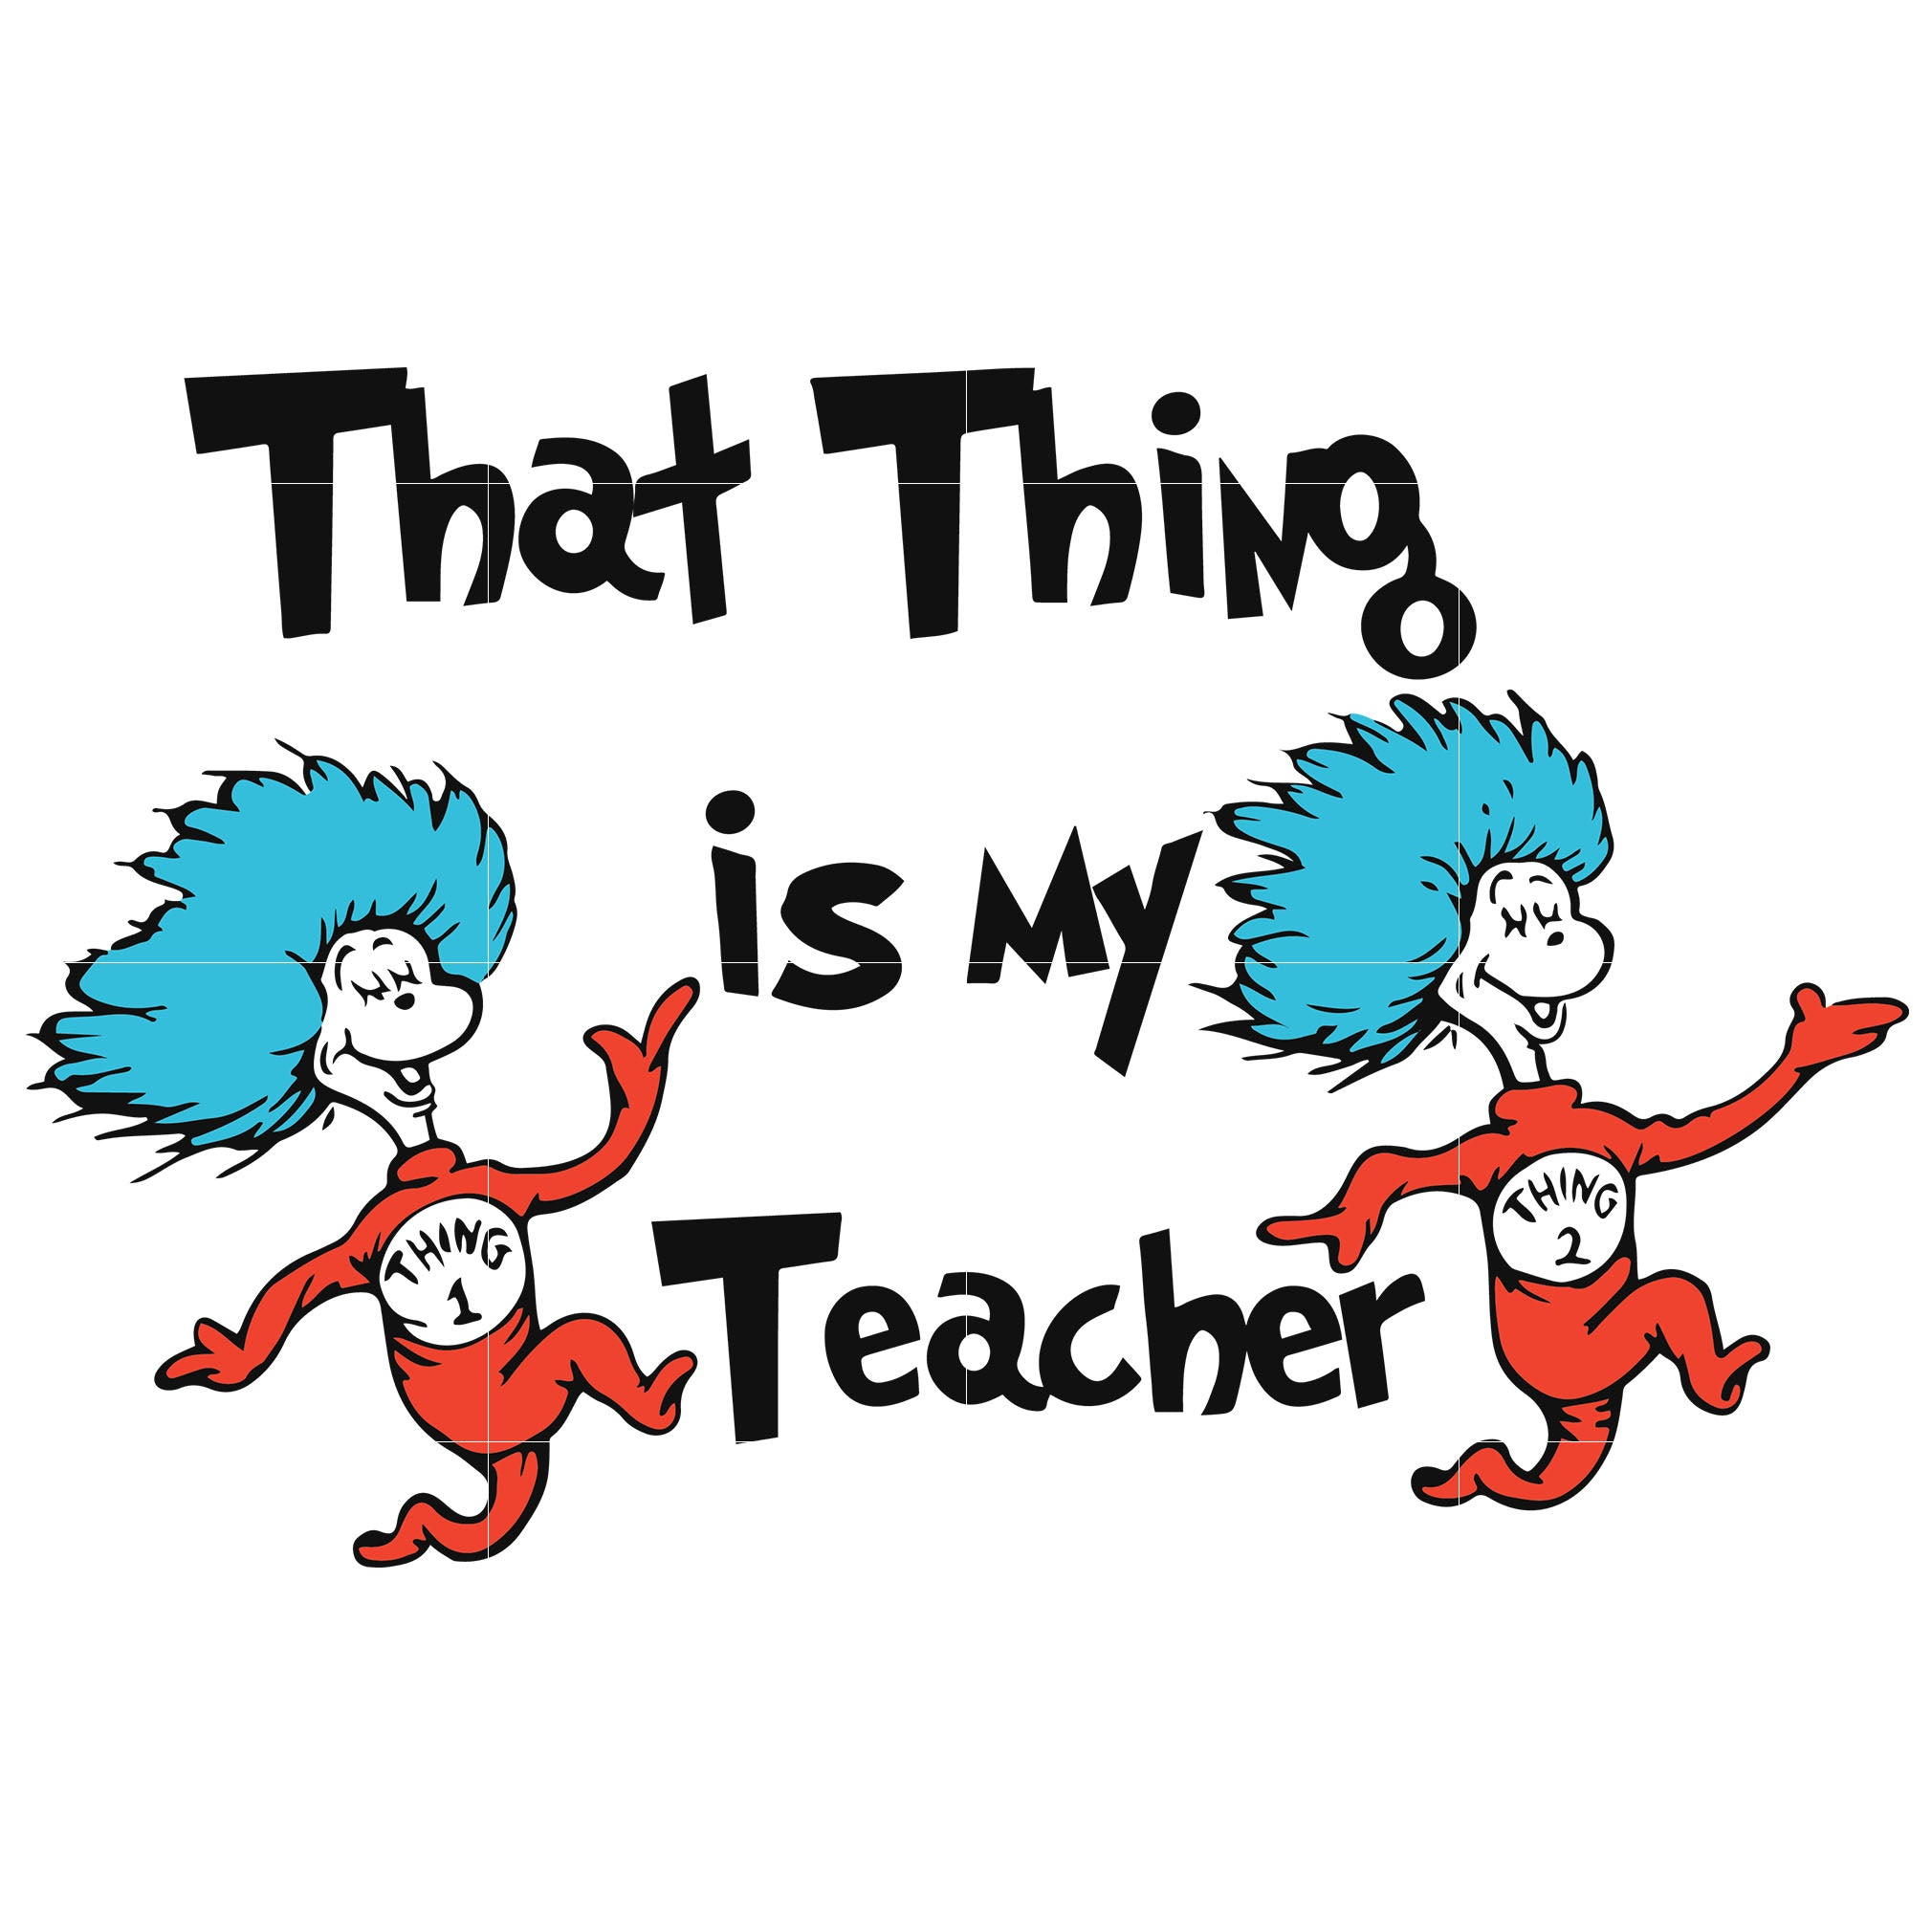 That thing is my teacher, thing one thing two, dr seuss svg, dr seuss quotes, digital file